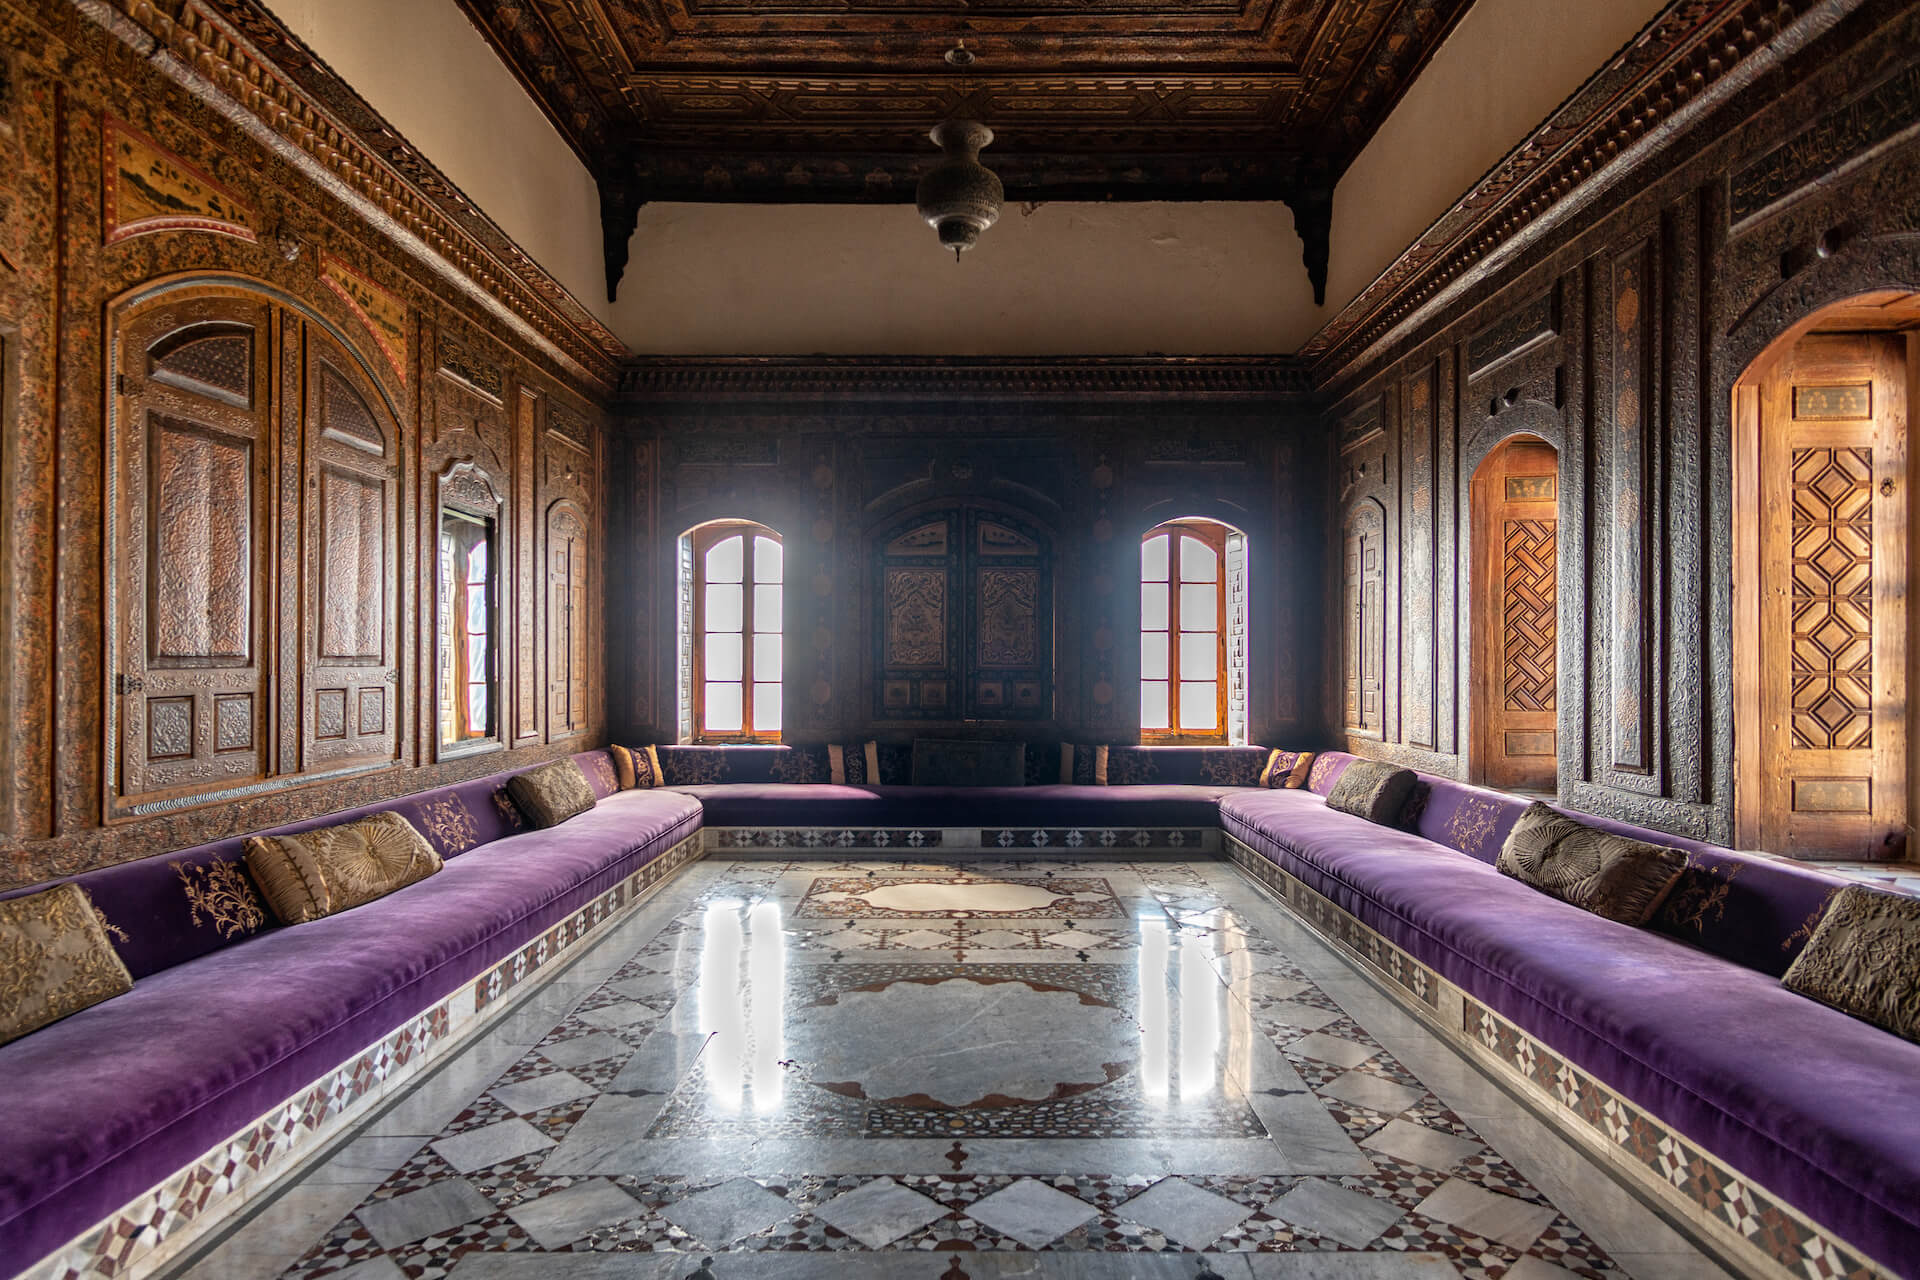 Kamer in het Beiteddine Paleis in Libanon